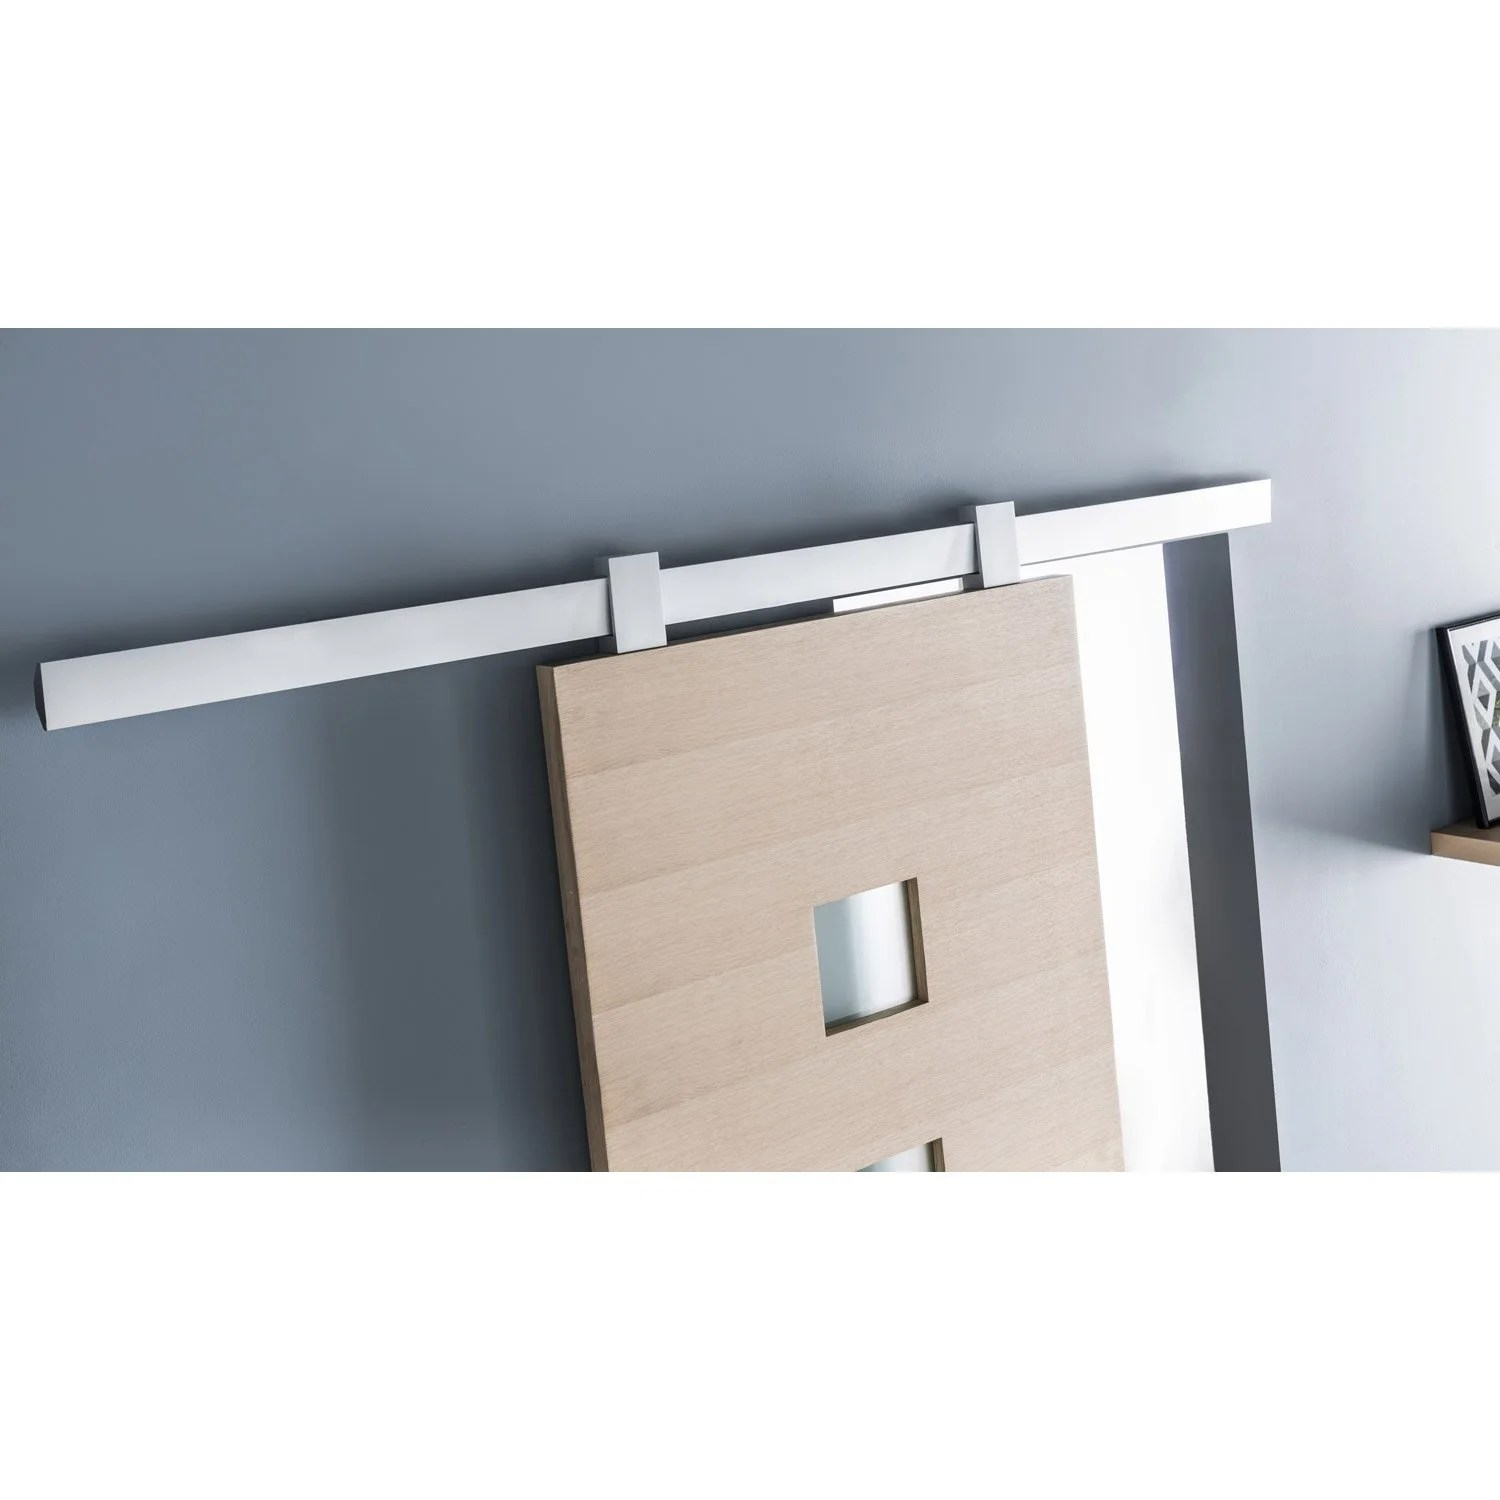 Systeme Optima Leroy Merlin Rail Coulissant Gota Pour Porte De Largeur 93 Cm Maximum